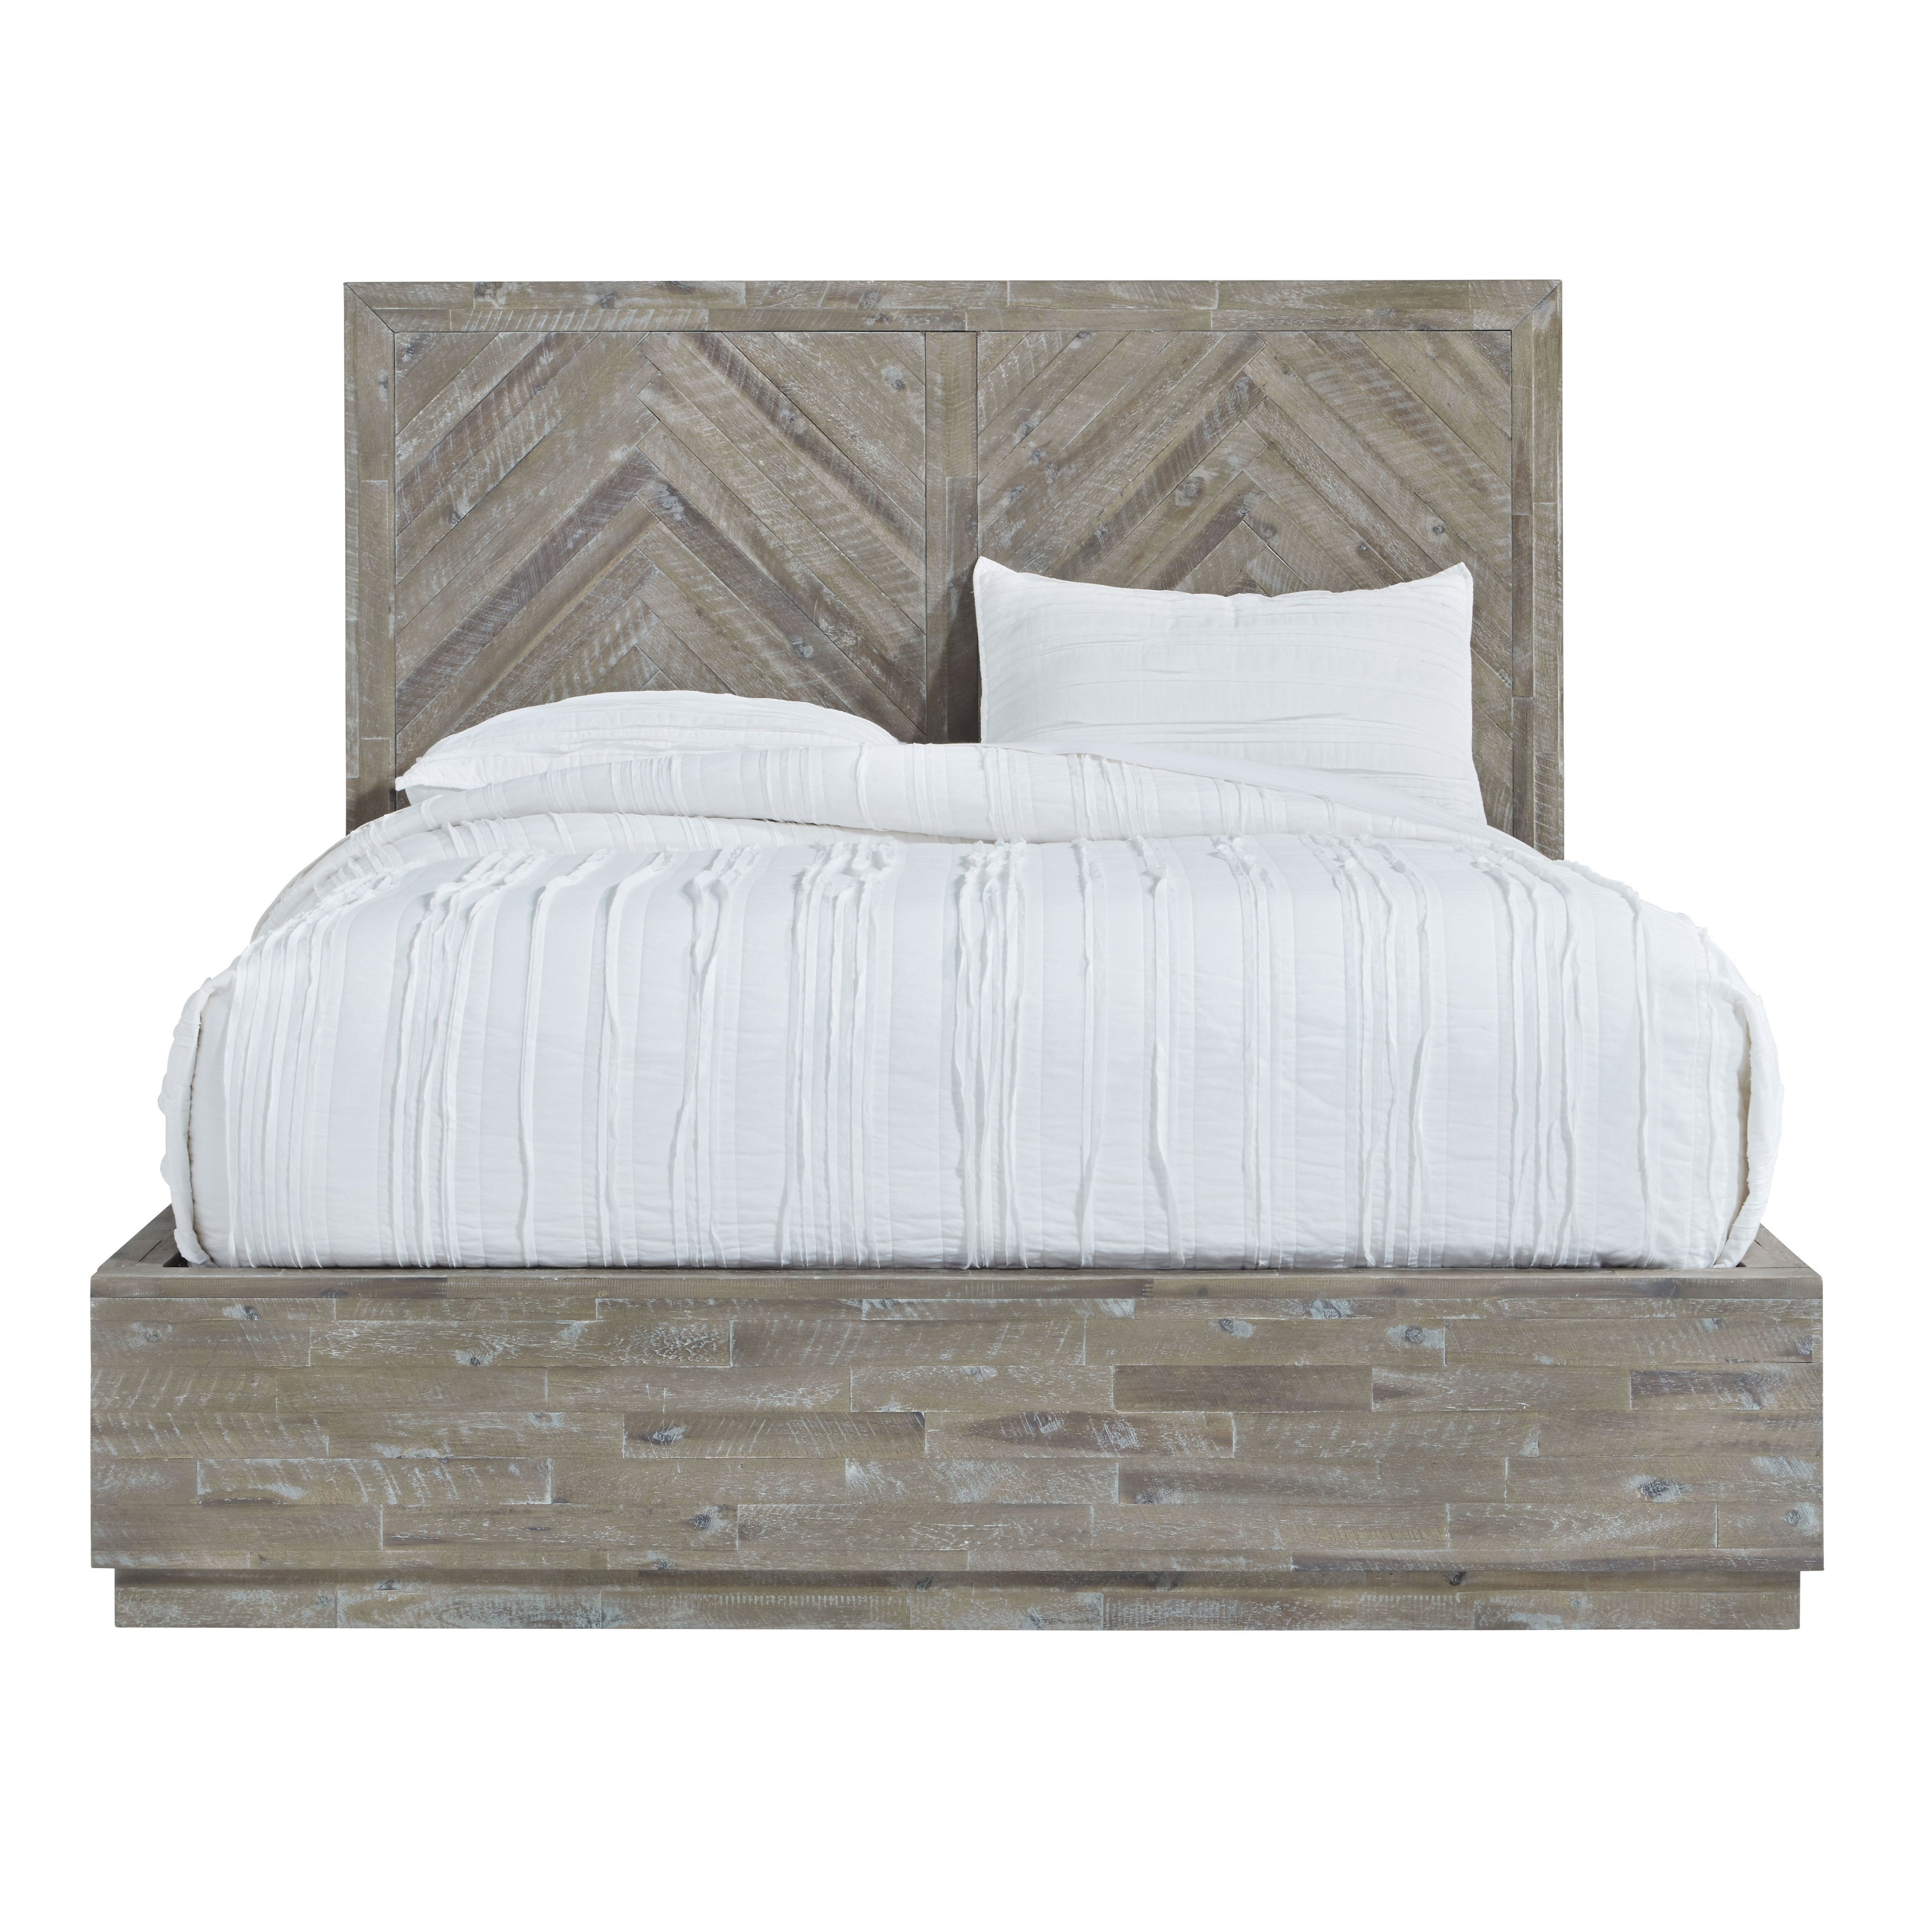 Image of: Shop Black Friday Deals On The Gray Barn Morning Star Queen Size Solid Wood Storage Bed In Rustic Latte Overstock 29345066